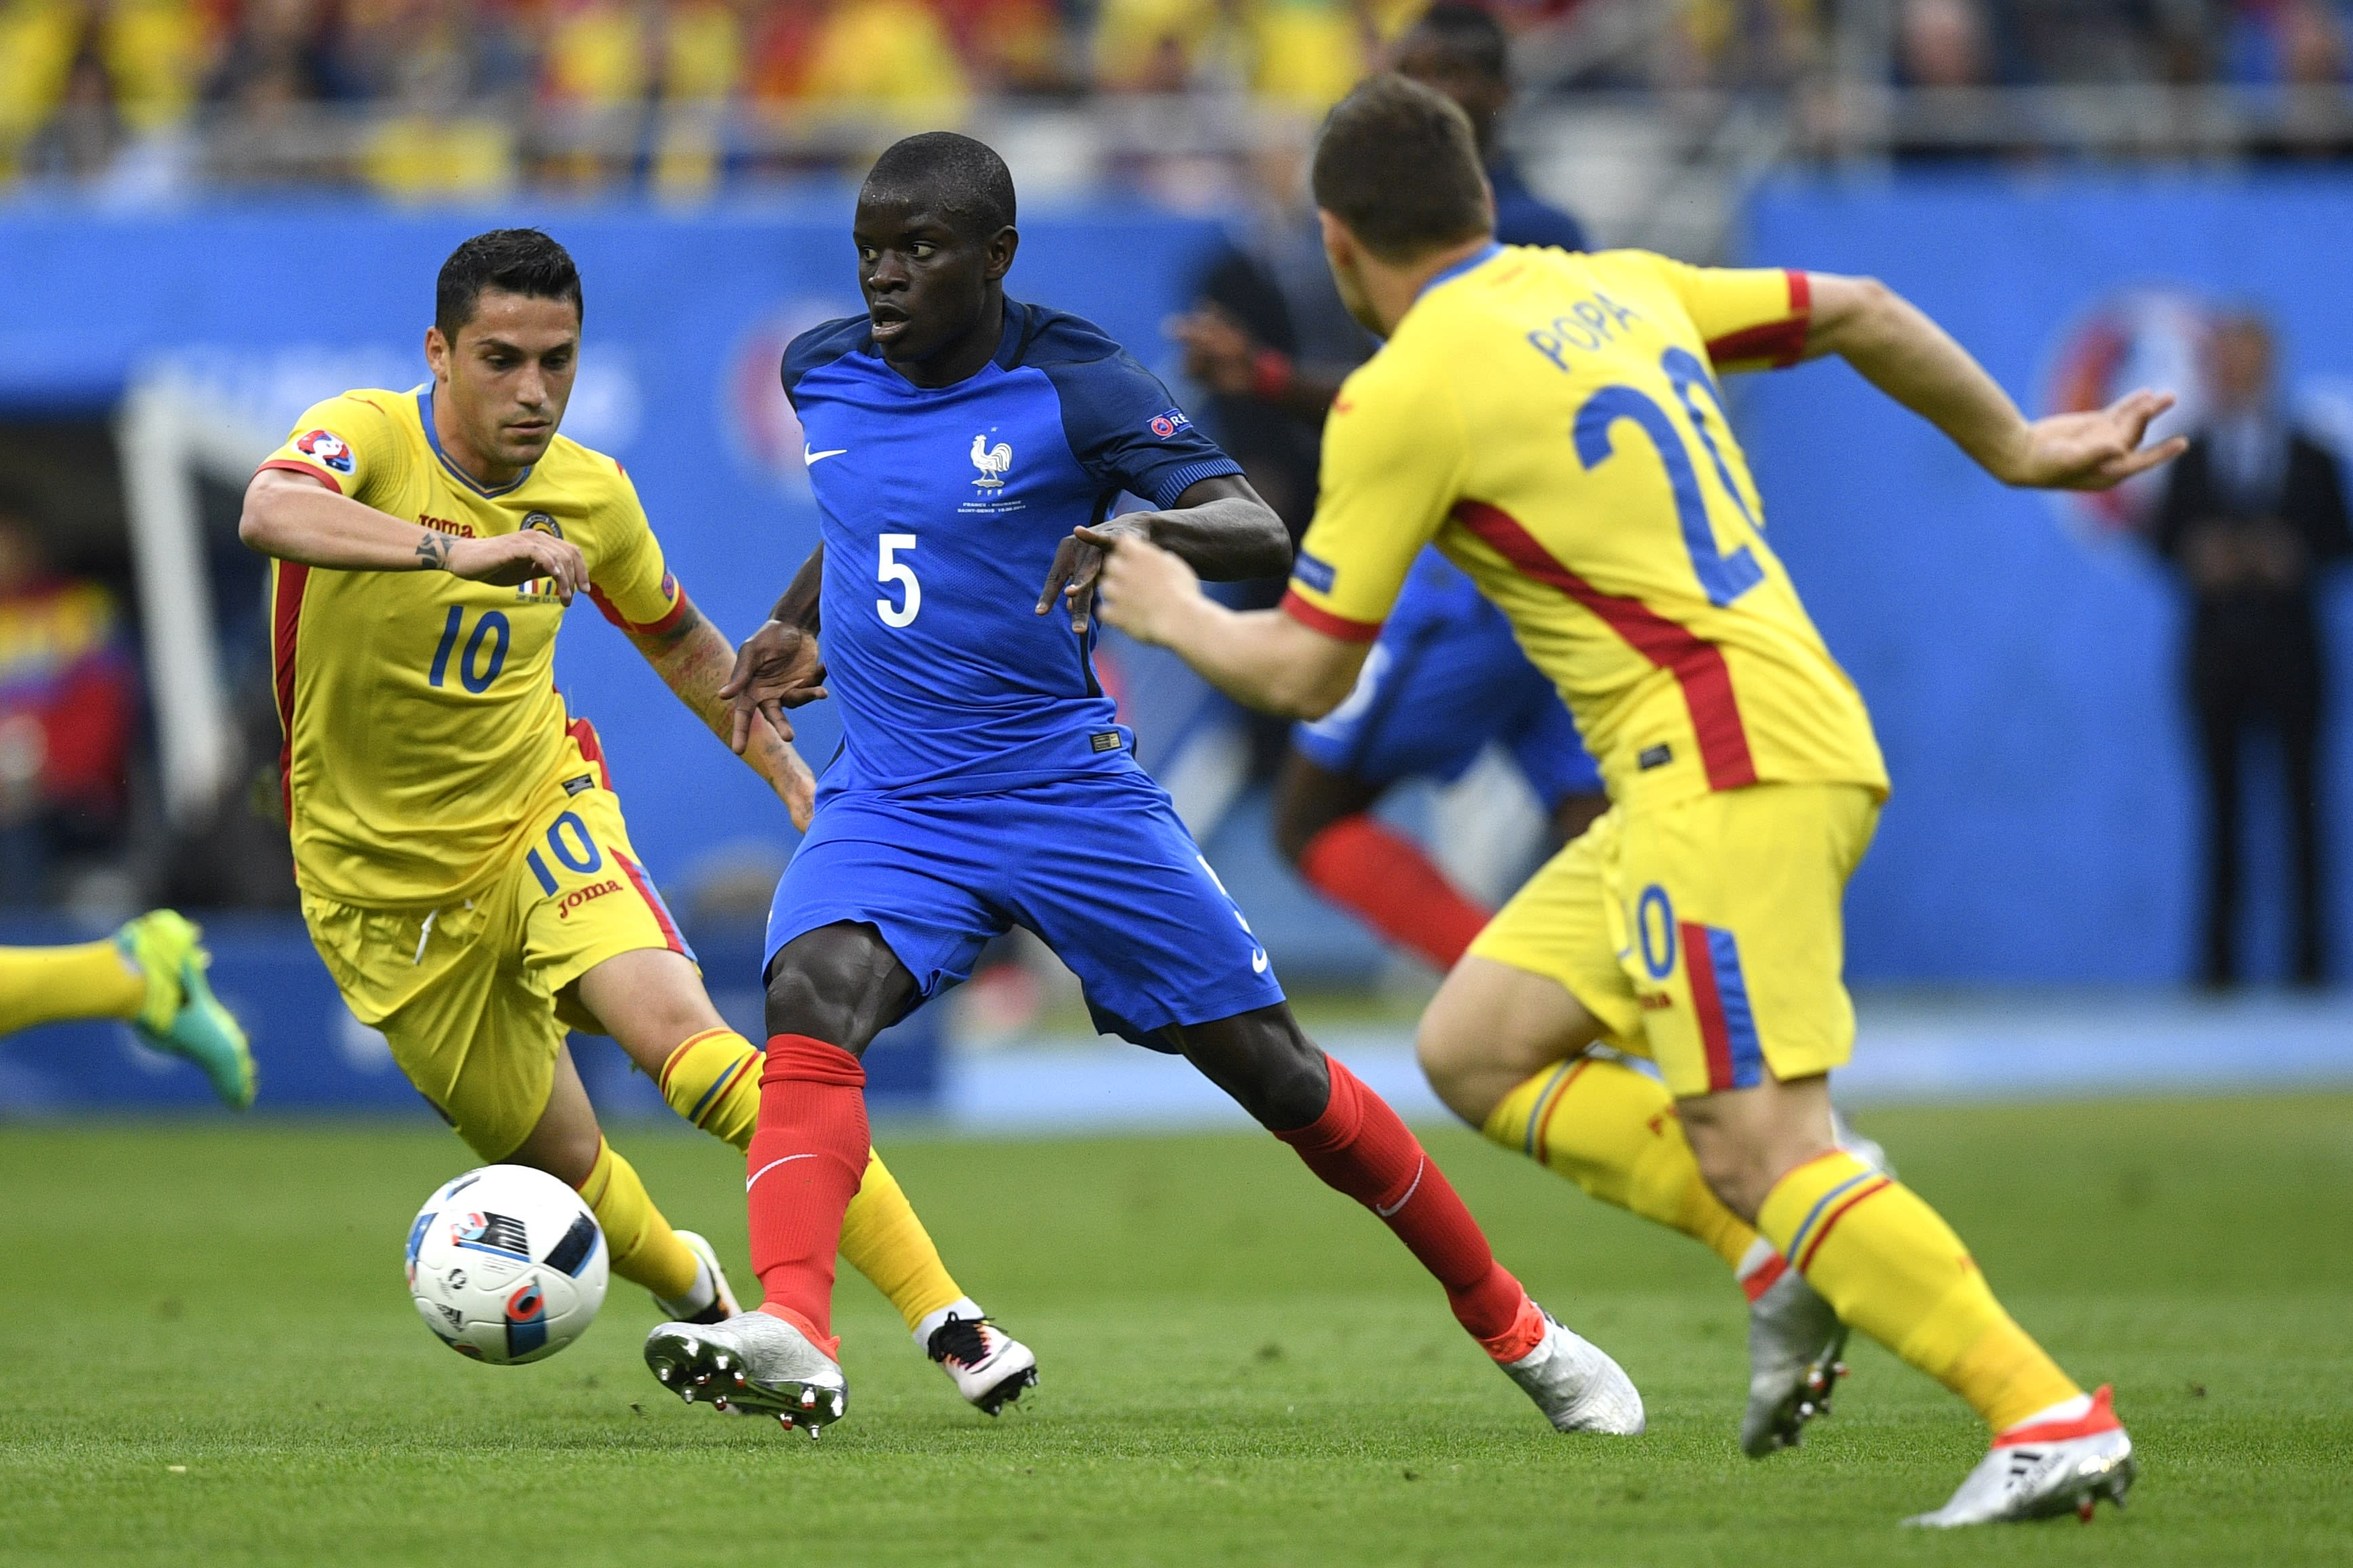 Kante playing in Euro 2016 against Romania.